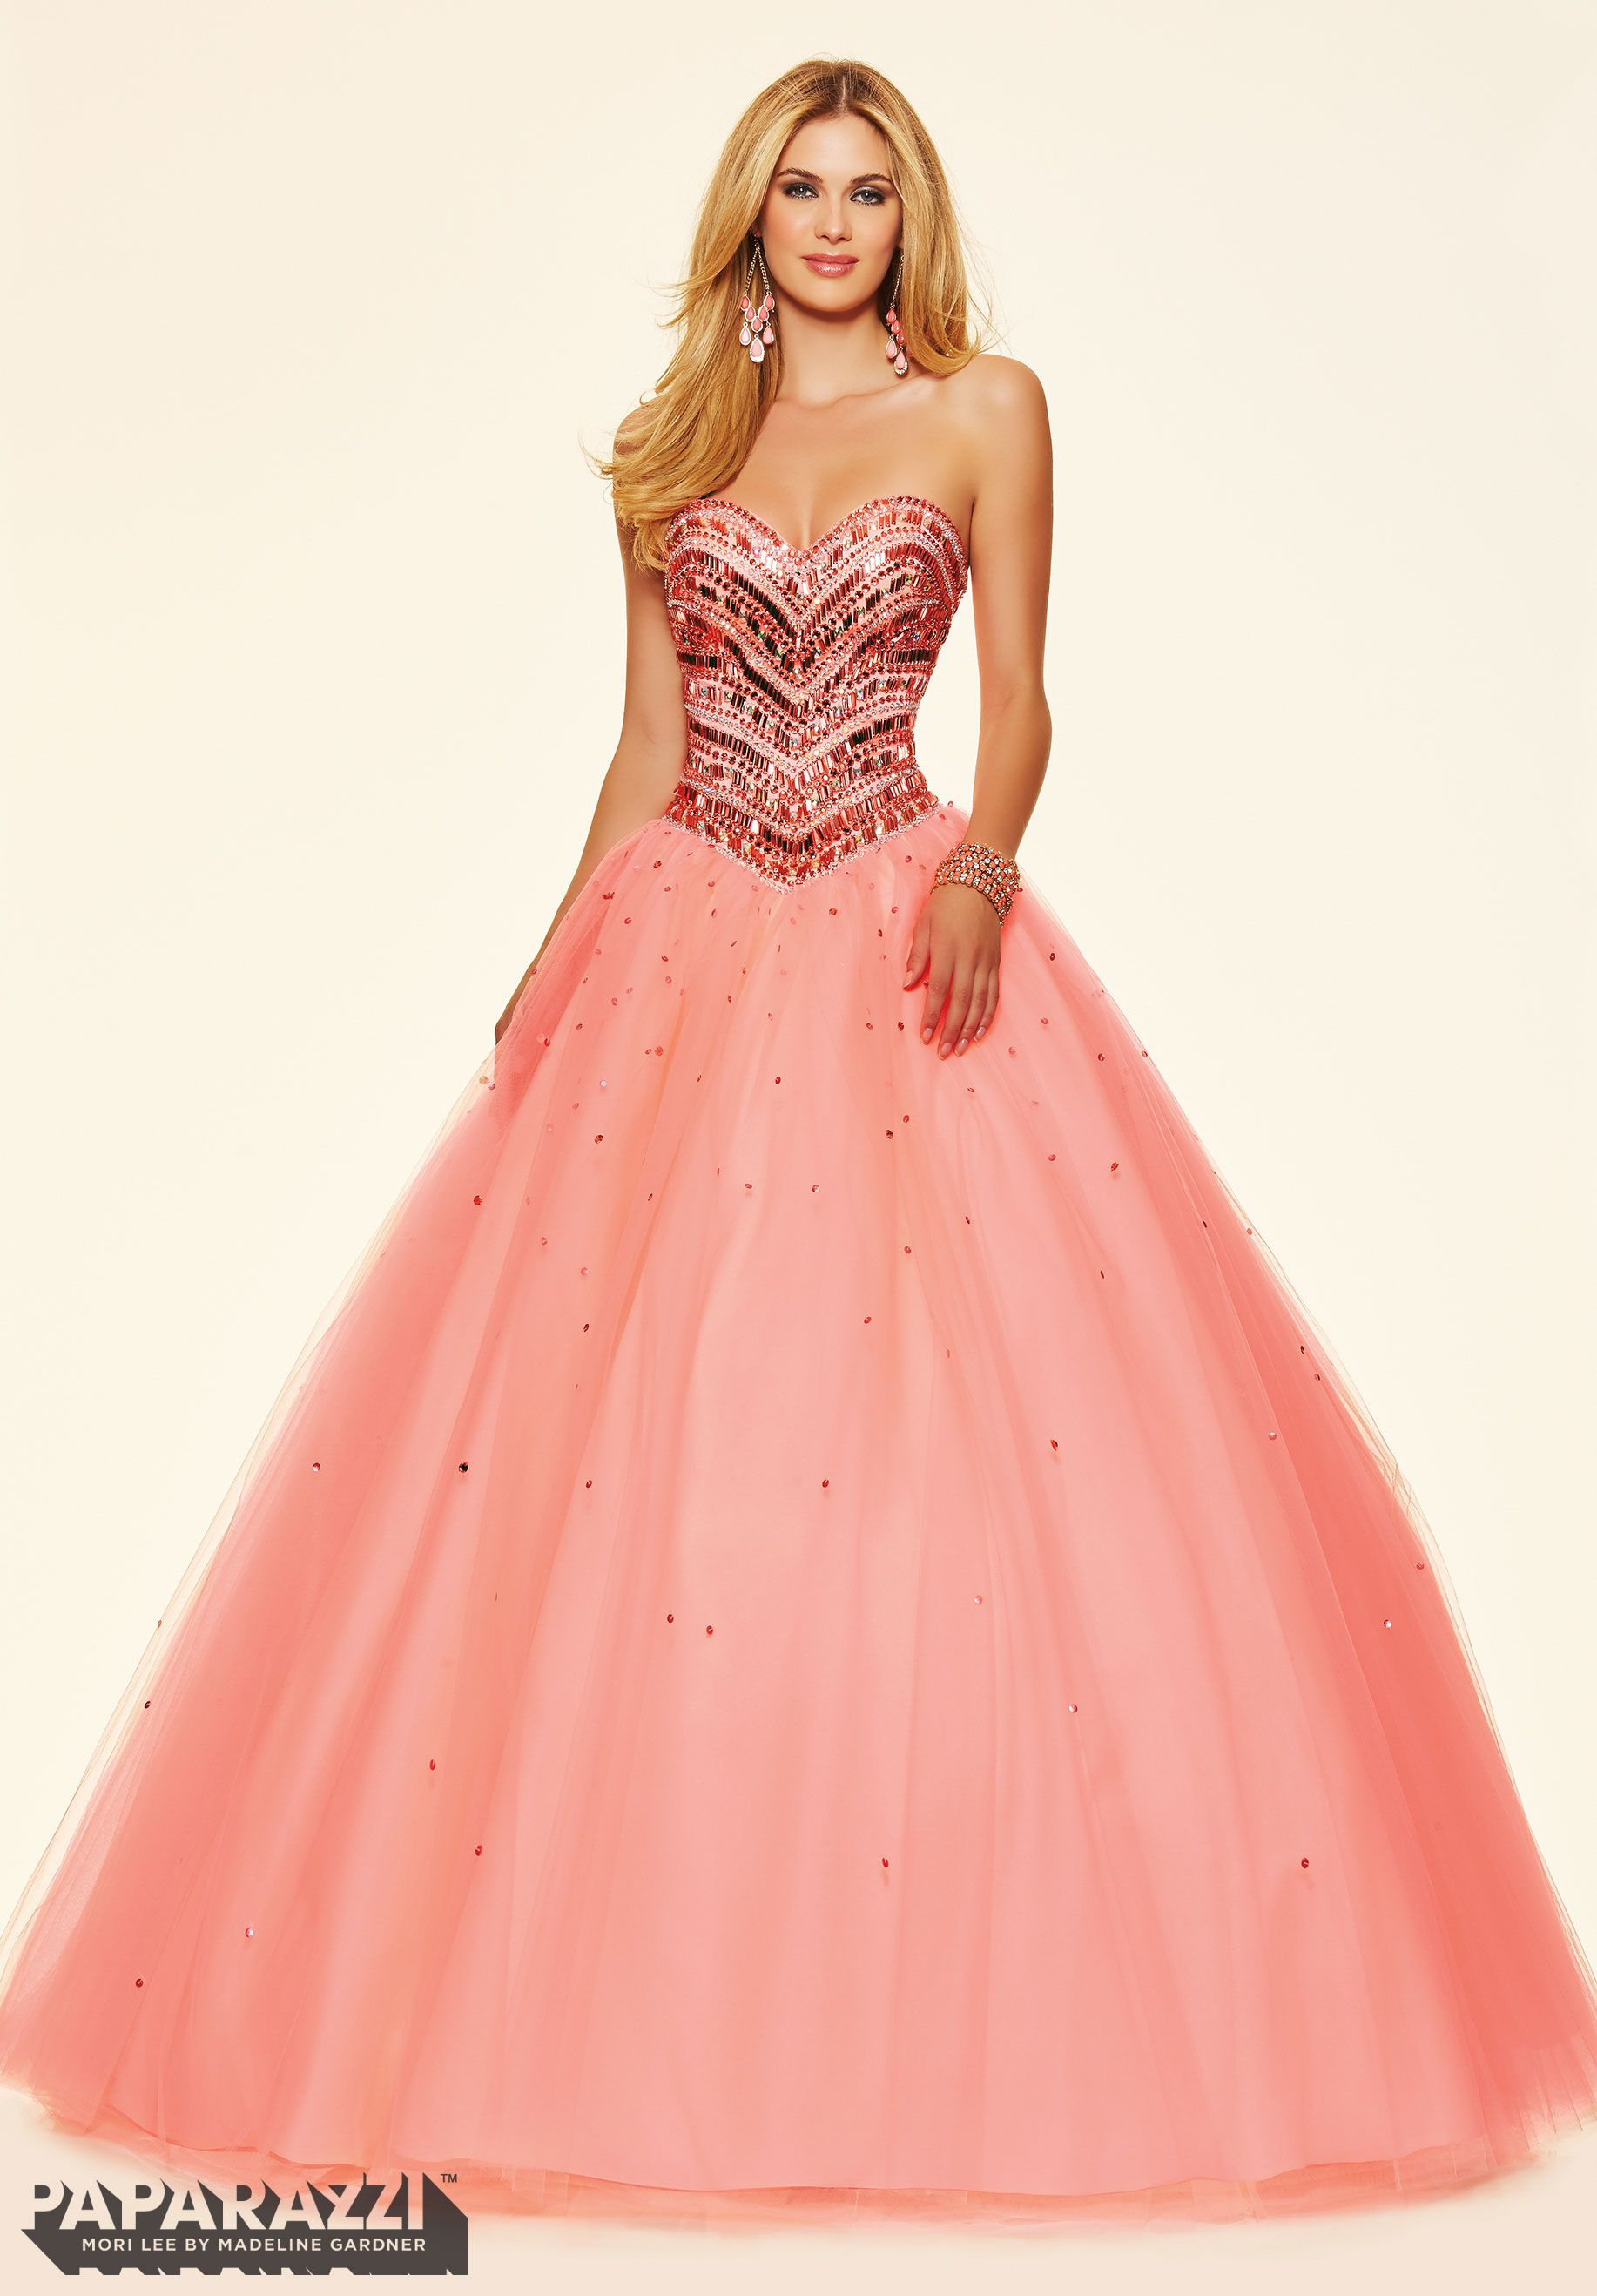 Prom Center at Bridal Collections Spokane, WA | dresses | Pinterest